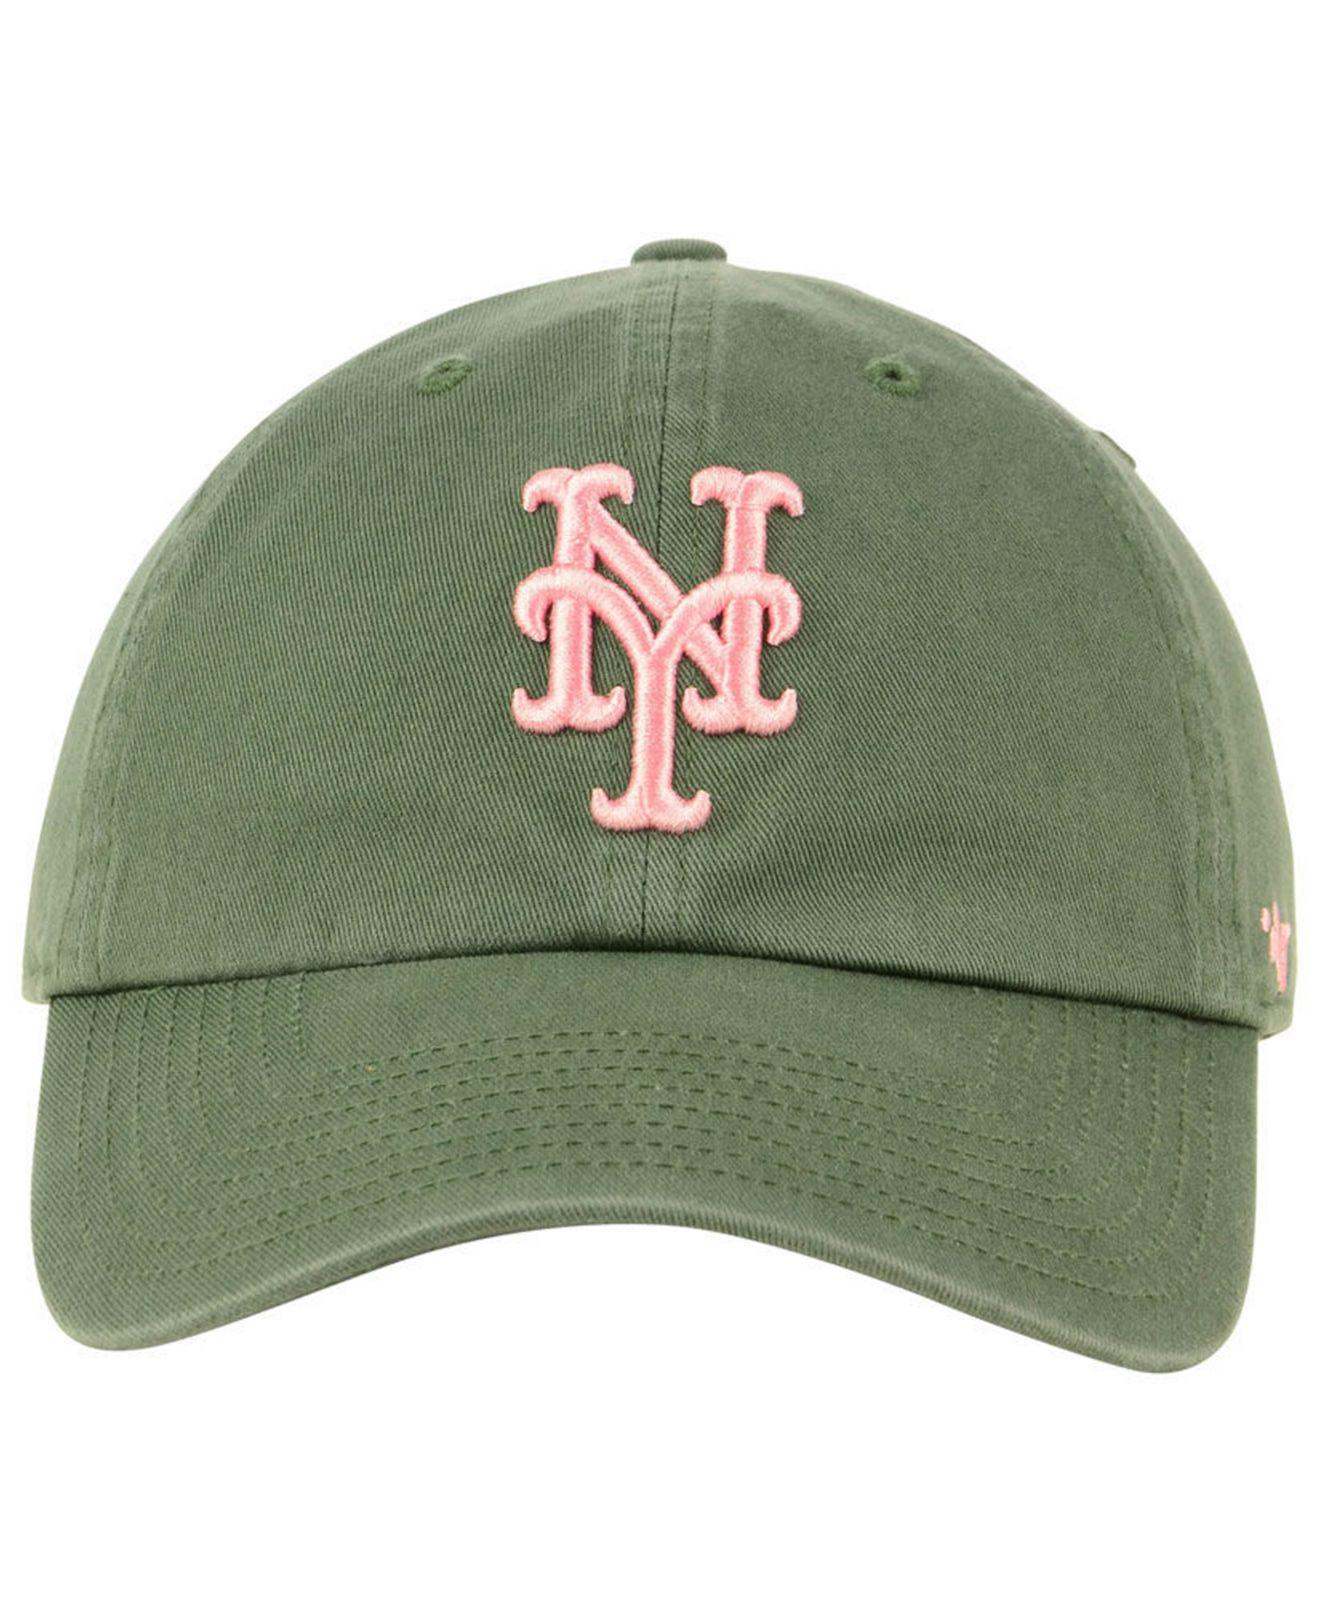 premium selection ebdf9 50f49 ... cheap lyst 47 brand new york mets moss pink clean up cap in green 7a136  fe7a6